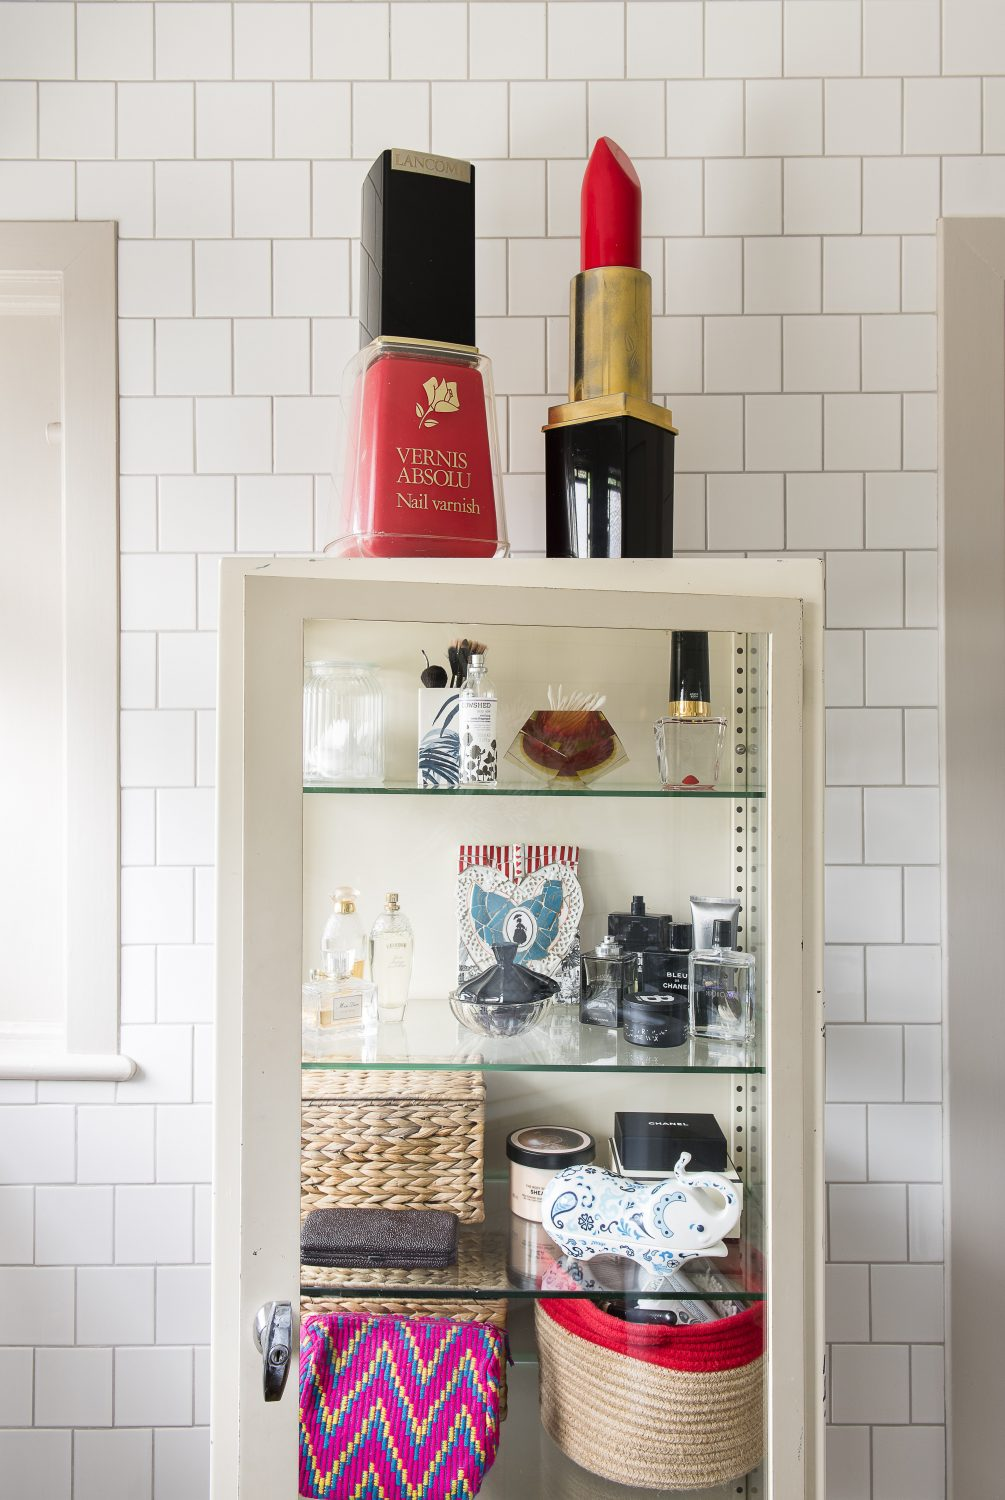 A French metal medicine cabinet. The giant nail varnish and lipstick were from an 80s shop display